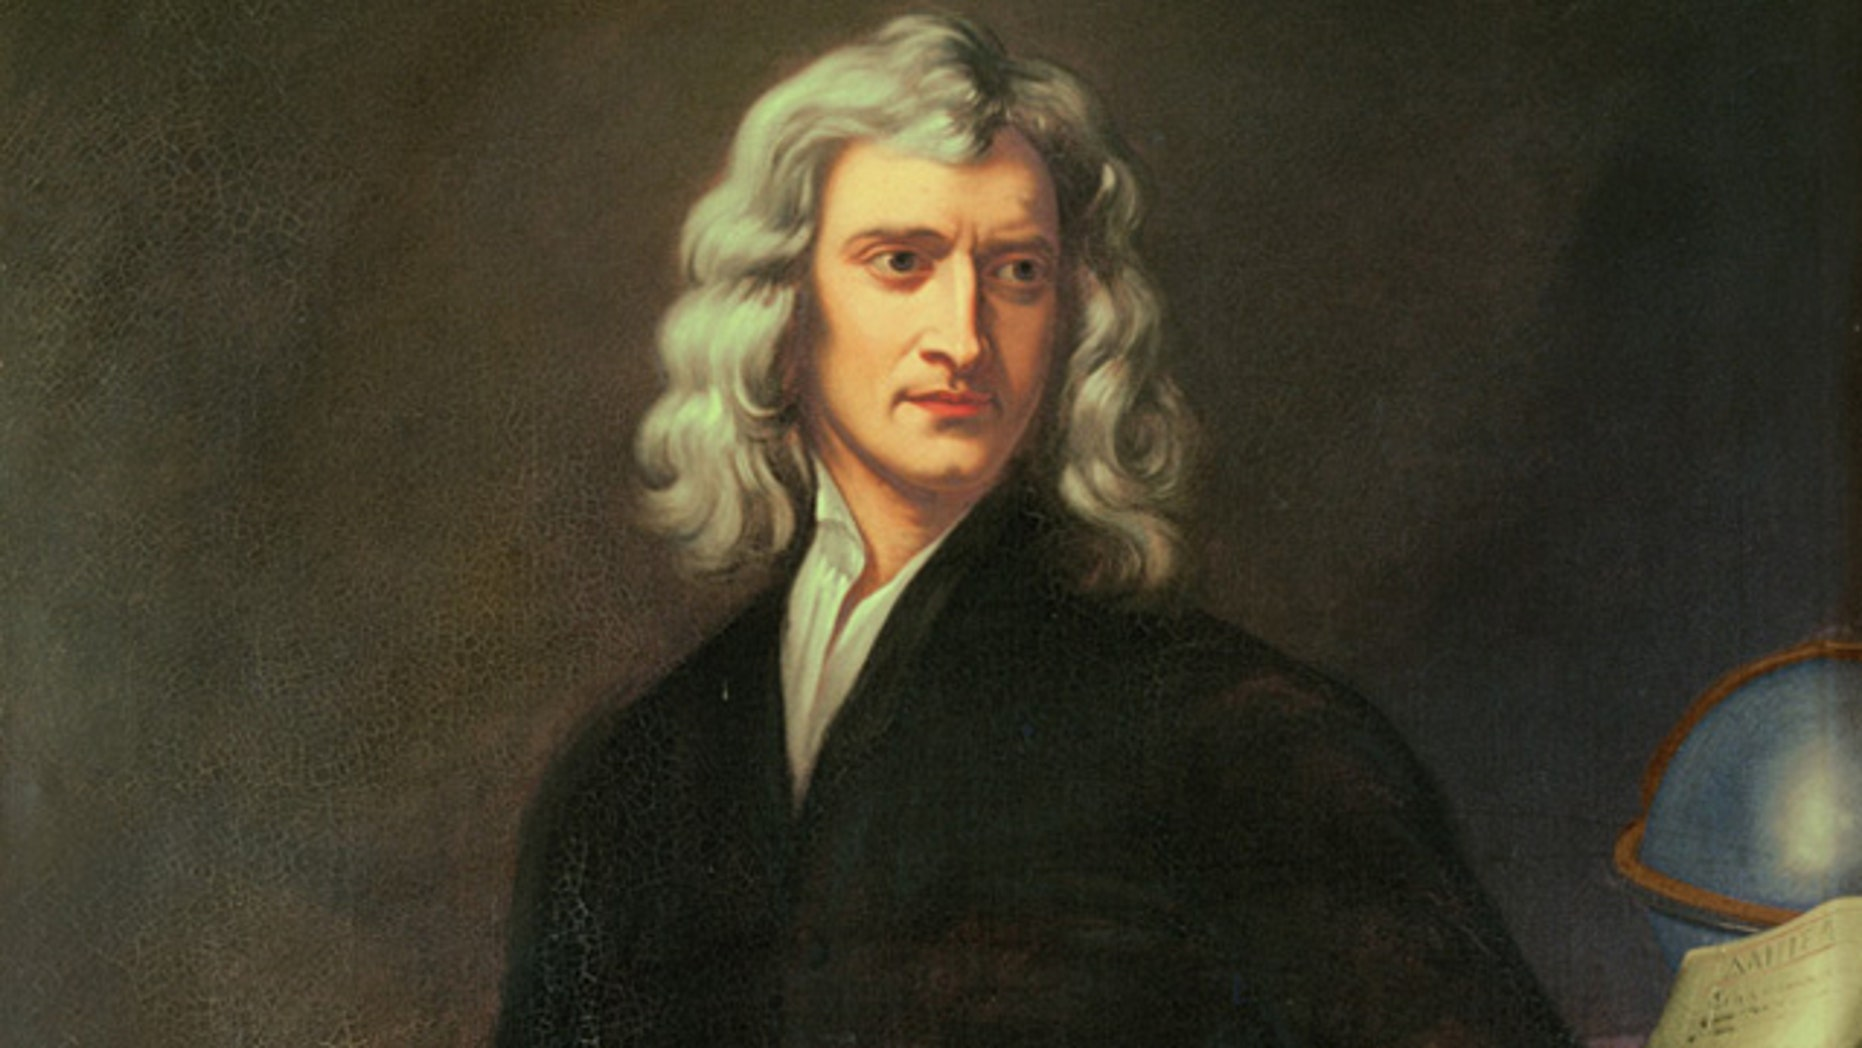 Cambridge University put 4,000 pages of Newton's most important scientific works on the internet for the public to access for free.